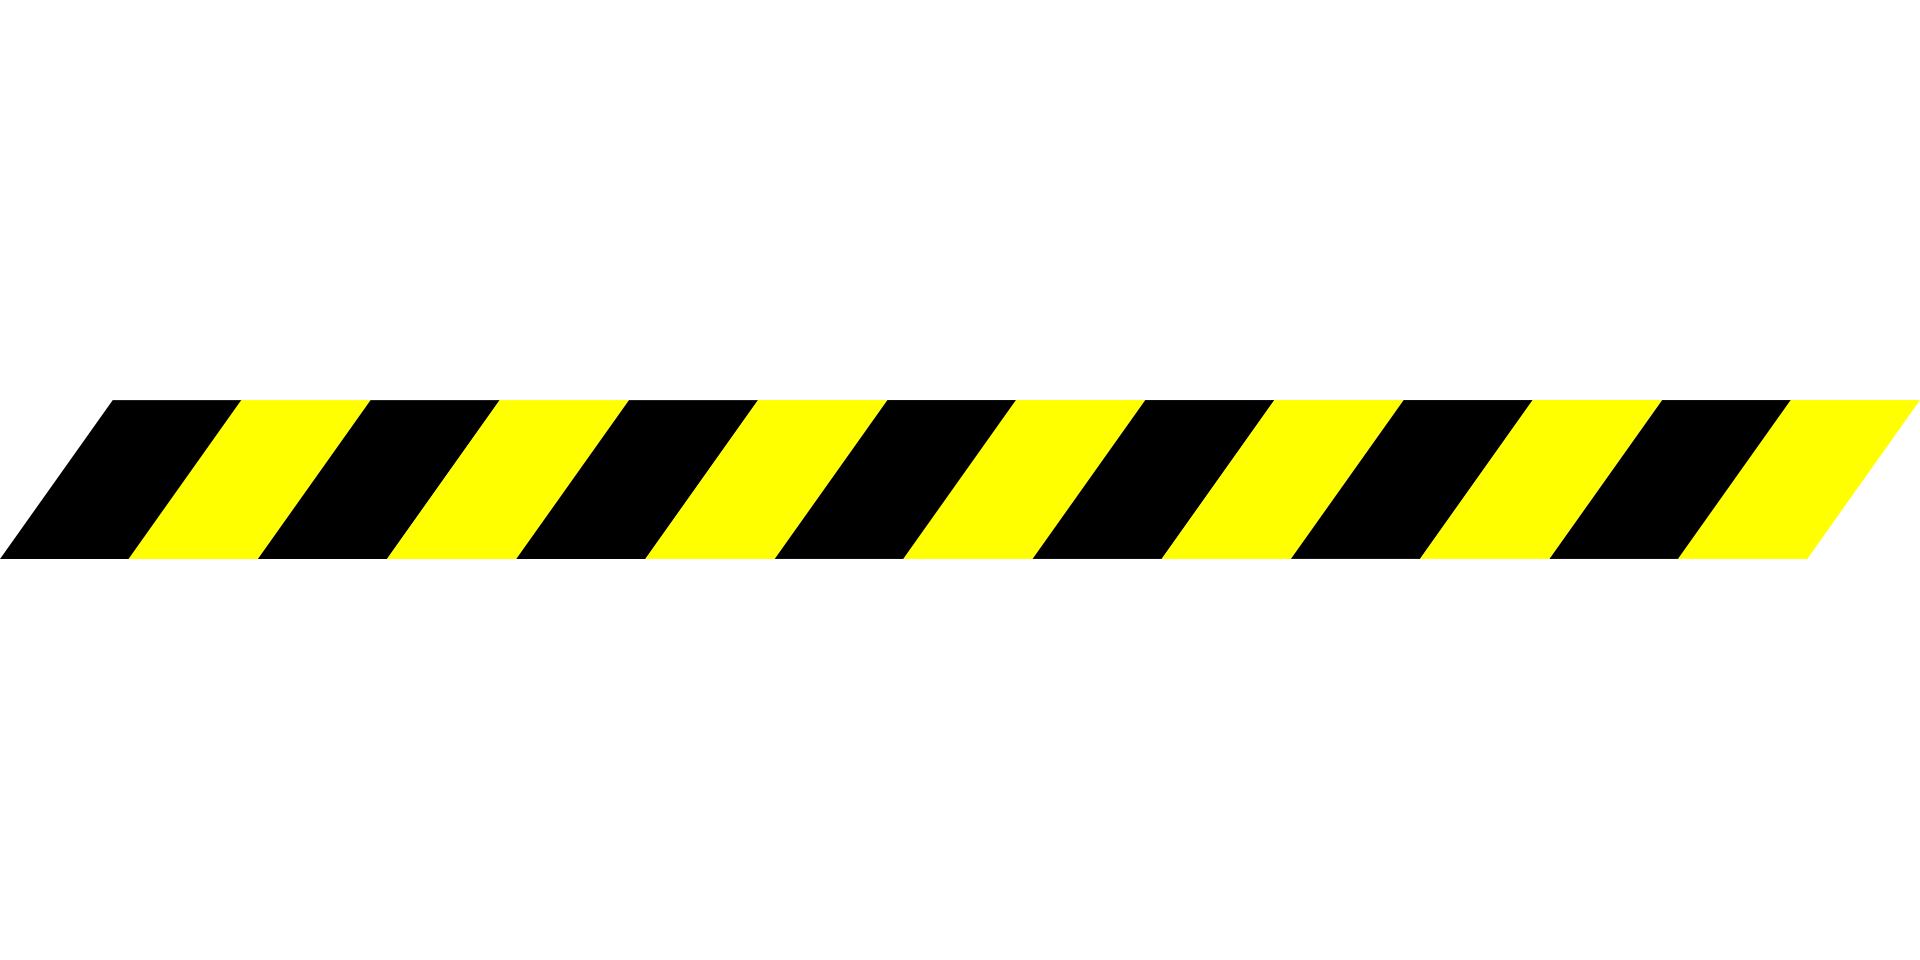 Caution clipart police tape, Caution police tape ...